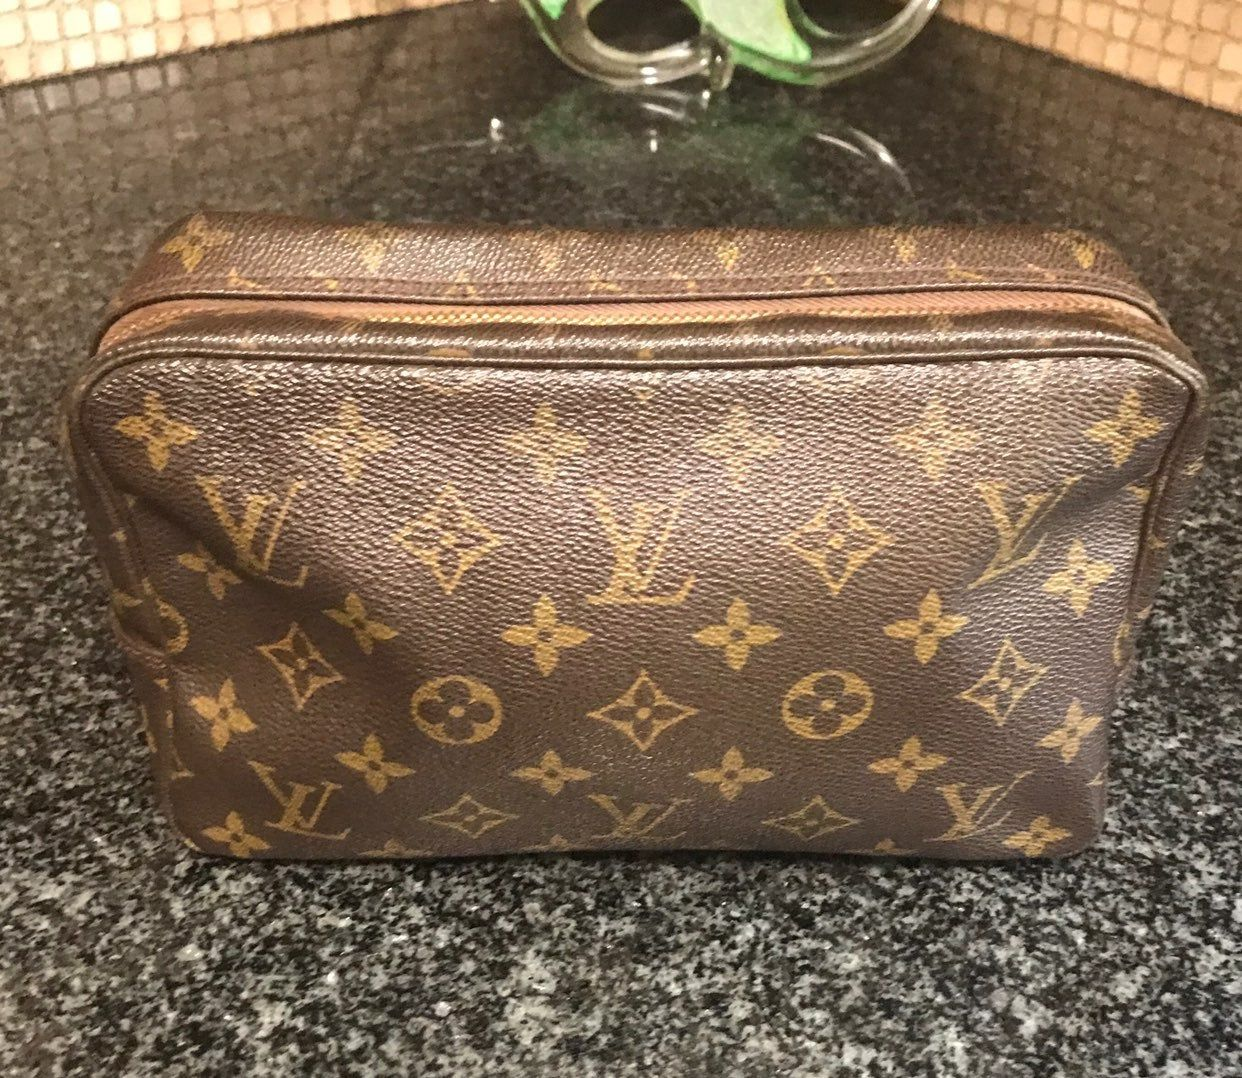 Gently Used Inside Shows Normal Signs Of Use Zipper Shows Metal Peeling Canvas Is Intact Louis Vuitton Cosmetic Bag Louis Vuitton Vuitton